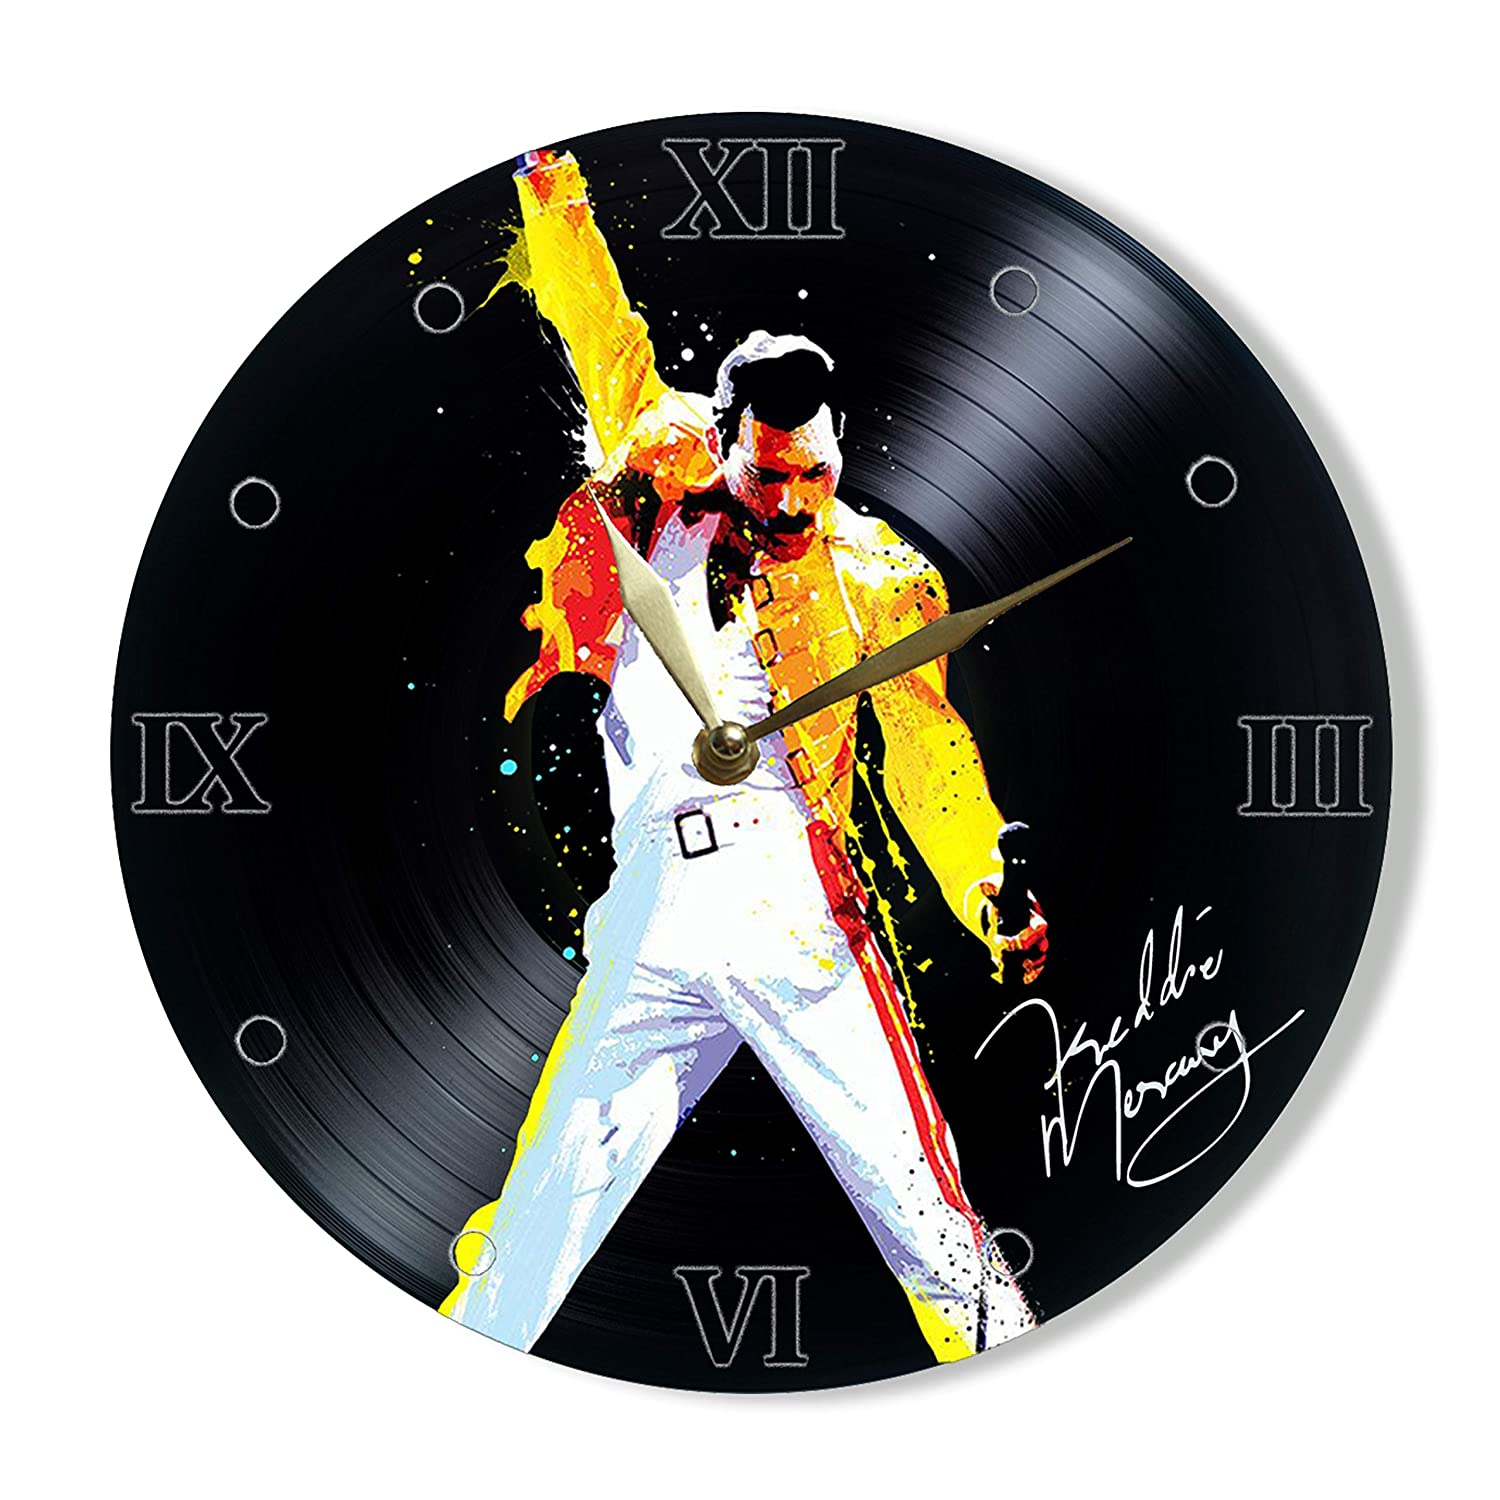 "SofiClock Freddie Mercury frontman Queen Vinyl Clock Painted 12"" - Wall Clock Queen Rock Band - Best Gift for Rock Music Lover - Original Wall Home Decor (Vinyl Clock Painted)"